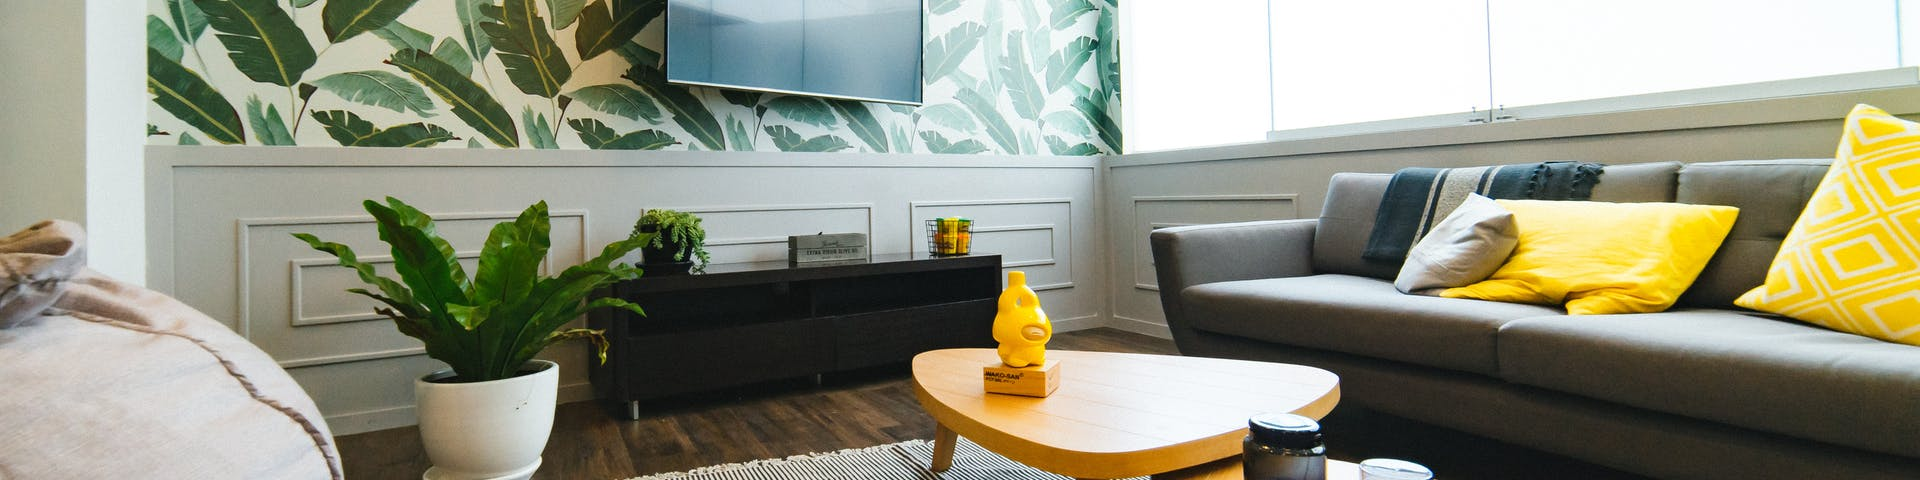 Why Study For An Interior Design Degree In Toronto In 2020